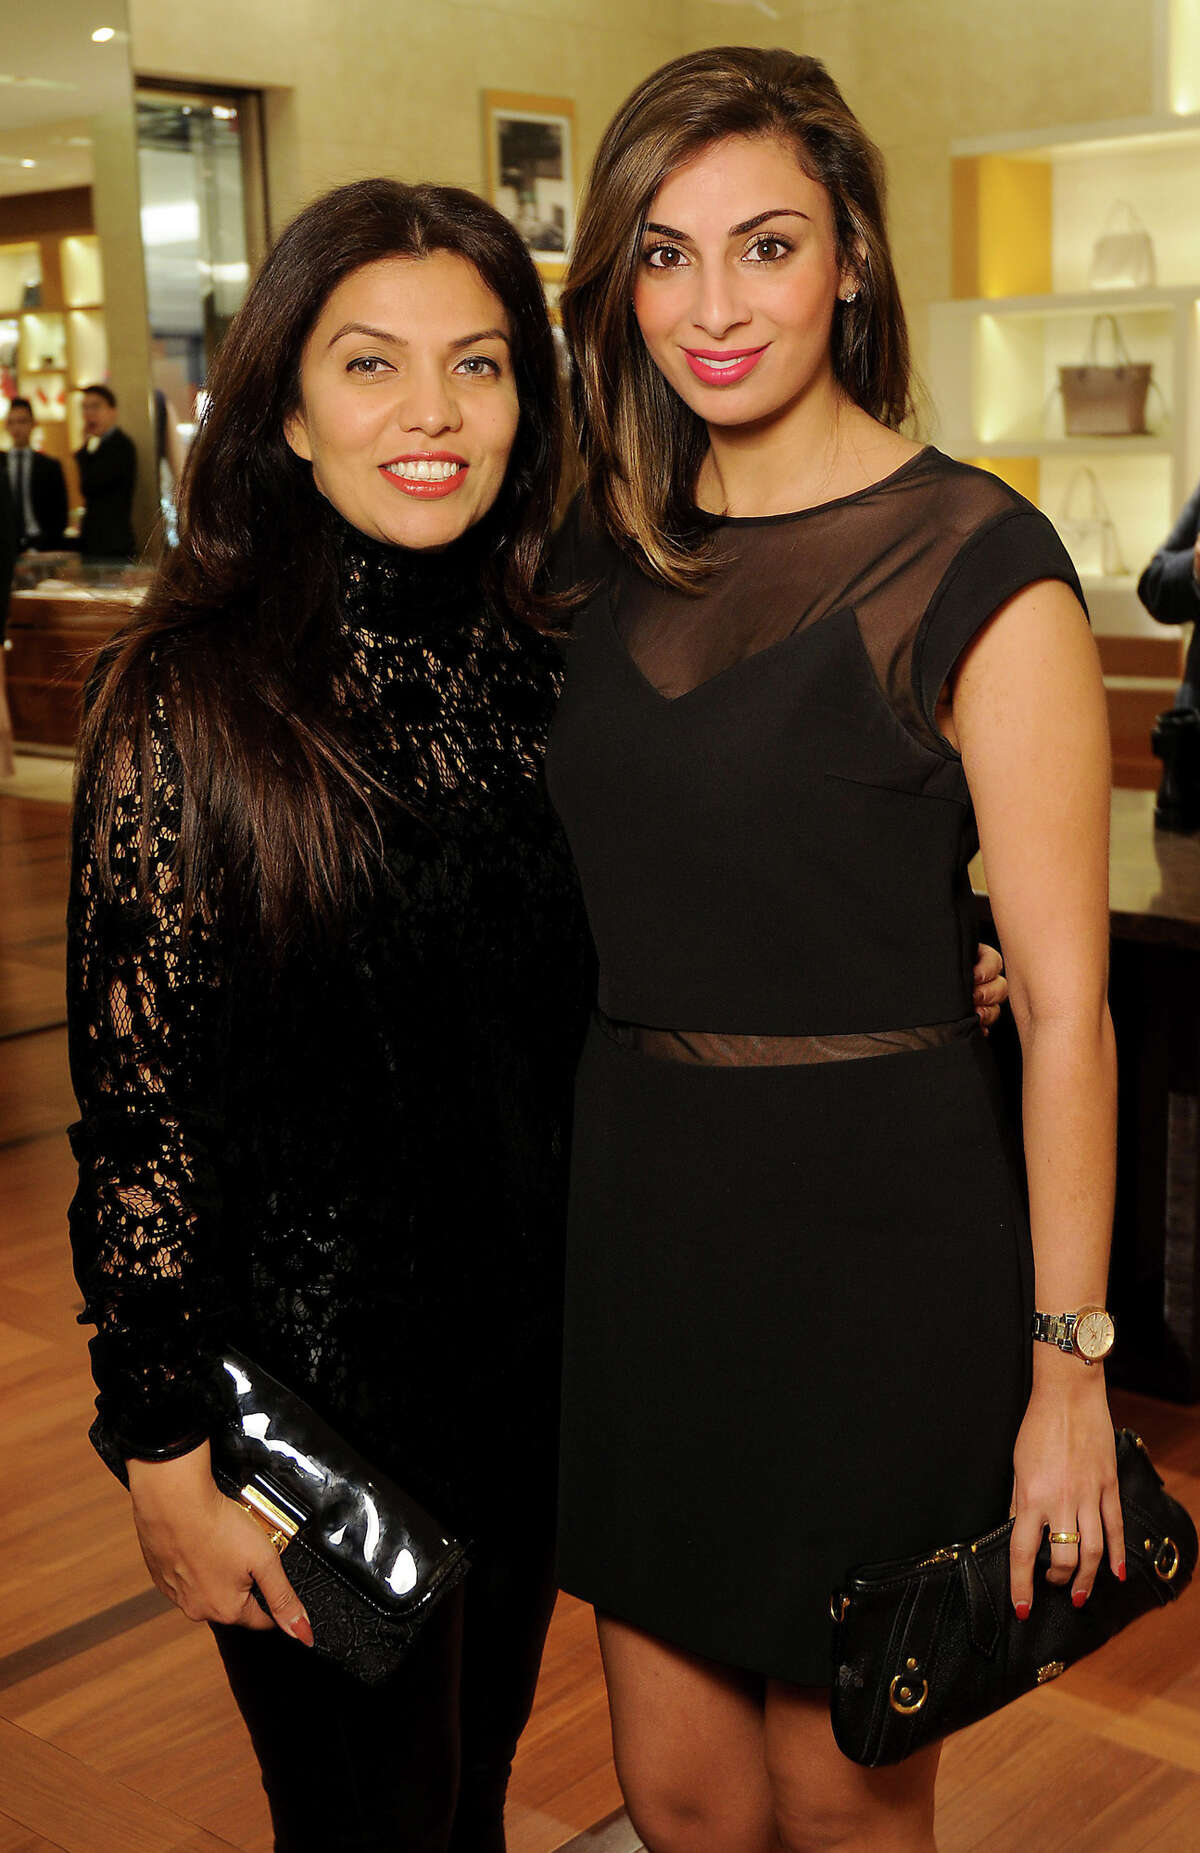 Mona Khan and Sukaina Rajani at the UNICEF event at the Louis Vuitton store in the Galleria Thursday Jan. 12, 2017.(Dave Rossman photo)